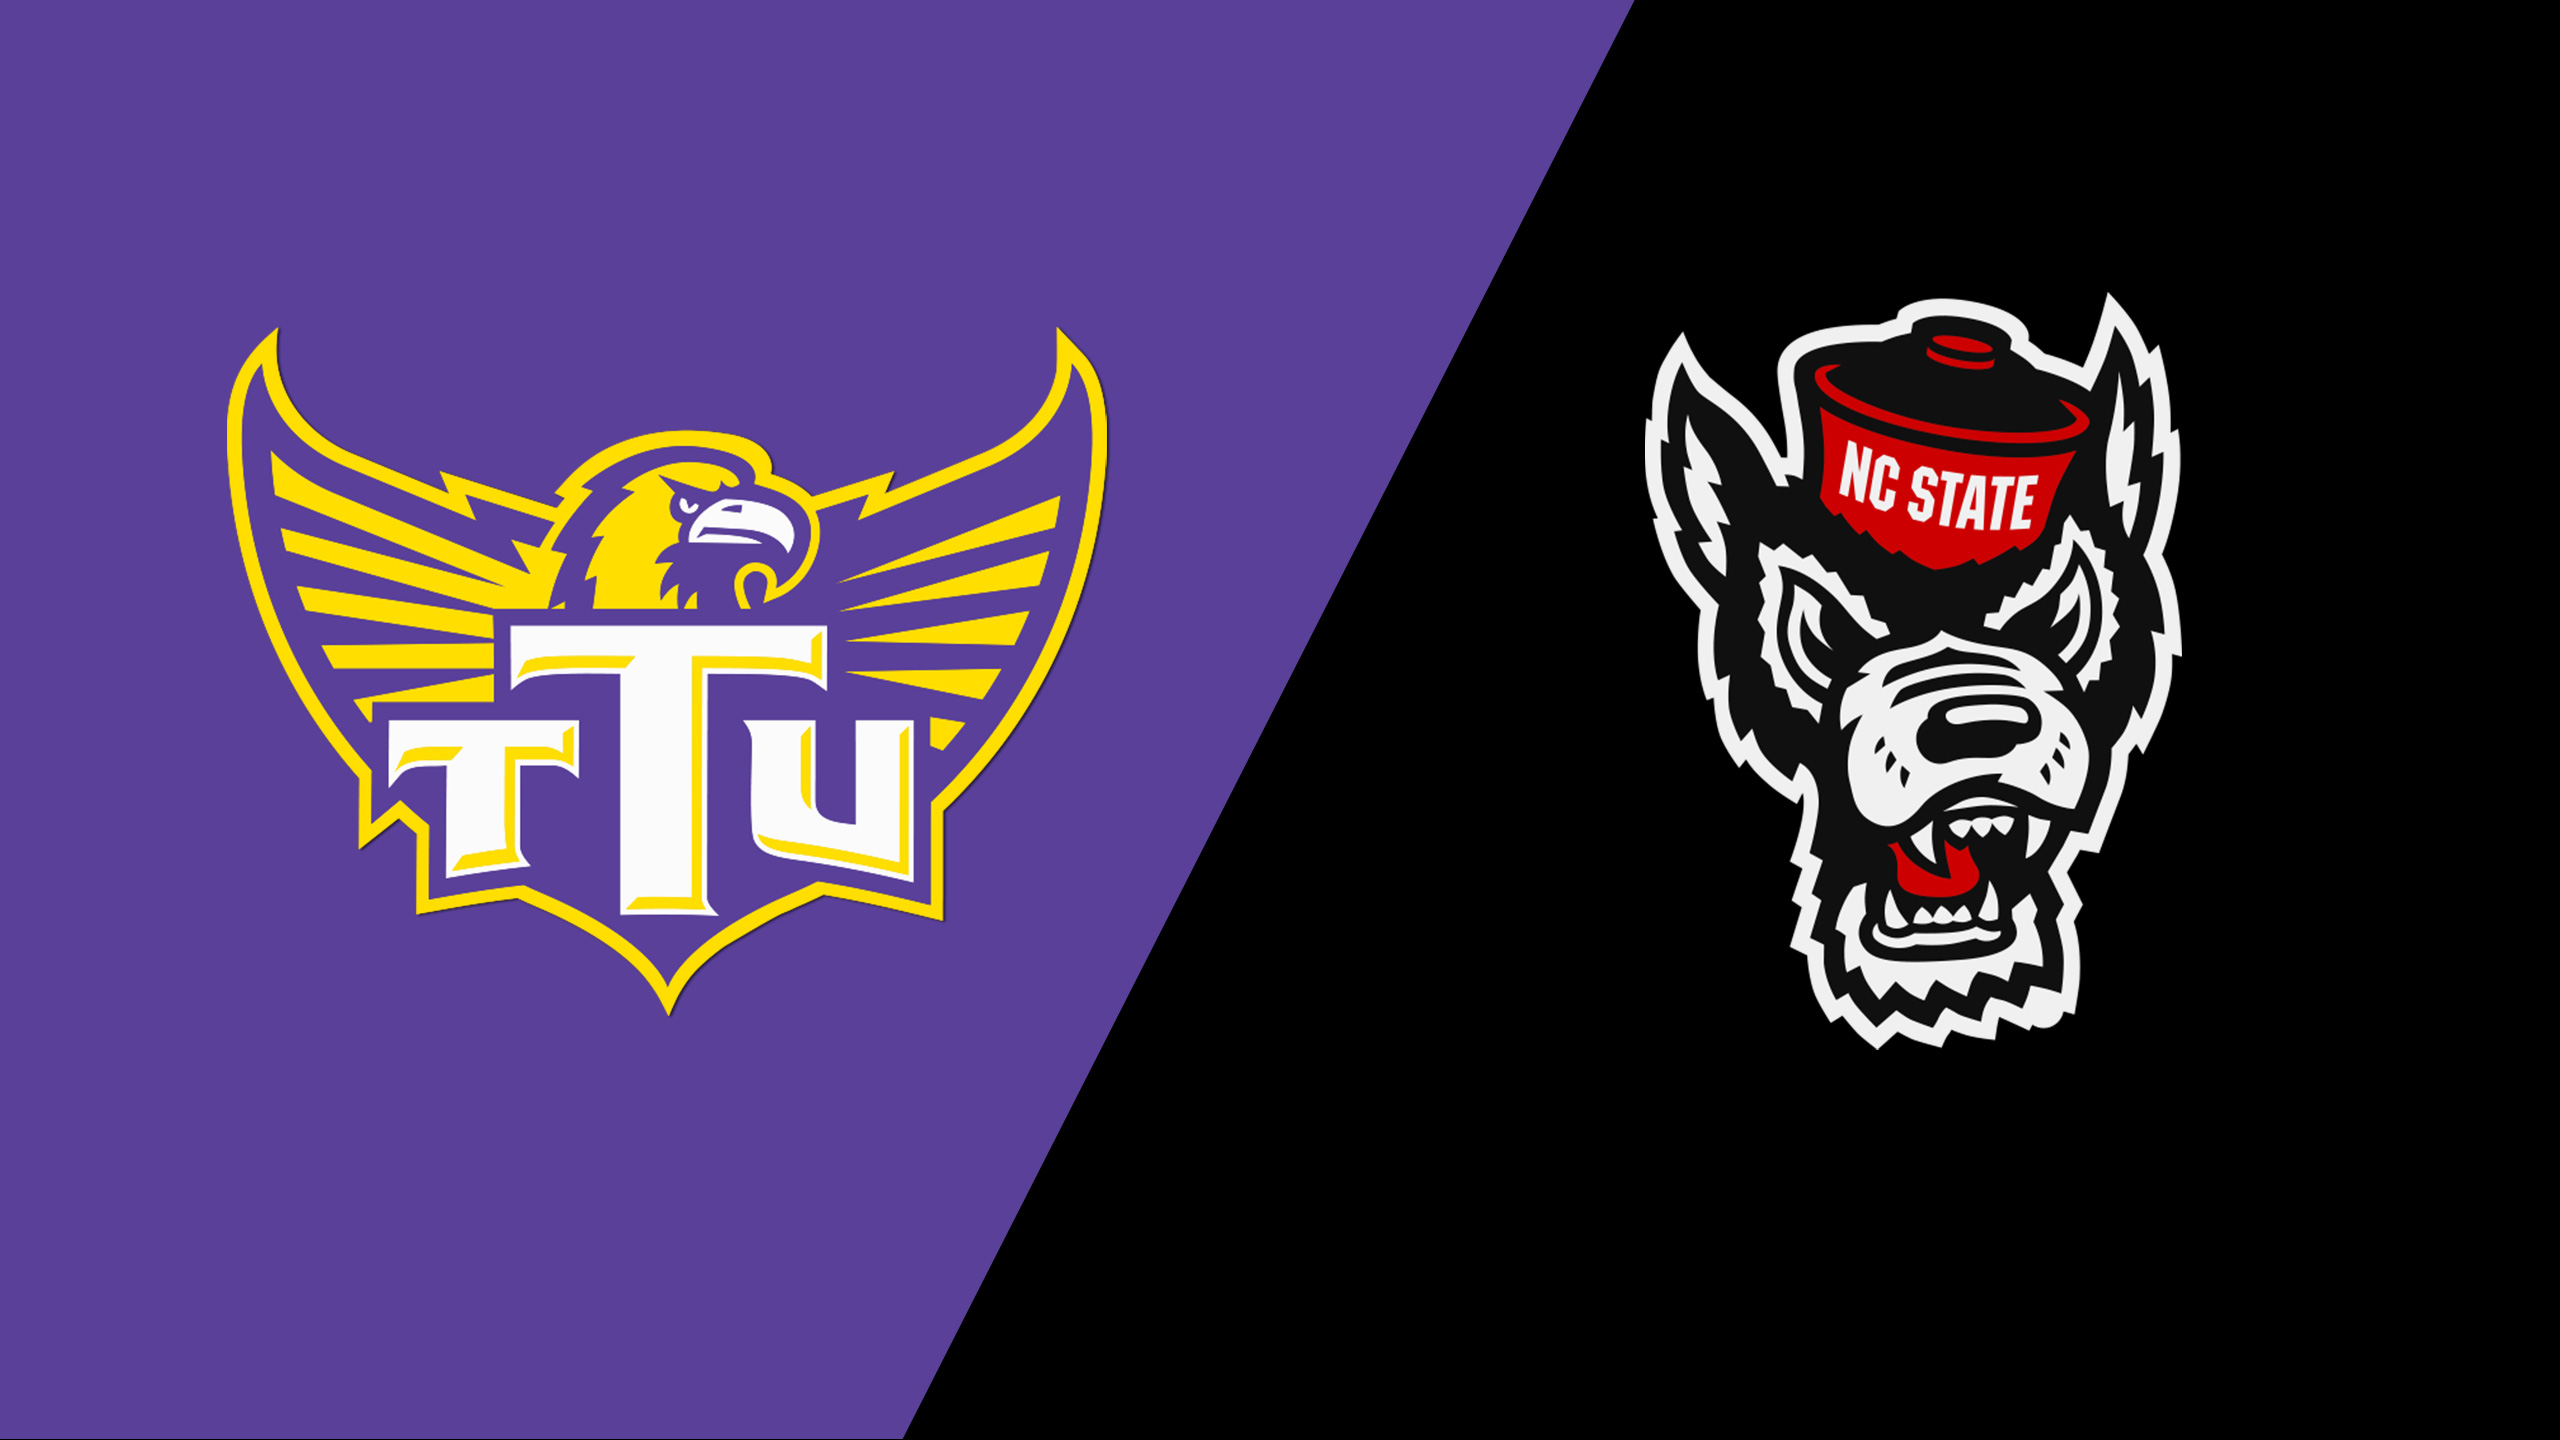 Tennessee Tech vs. NC State (Baseball)